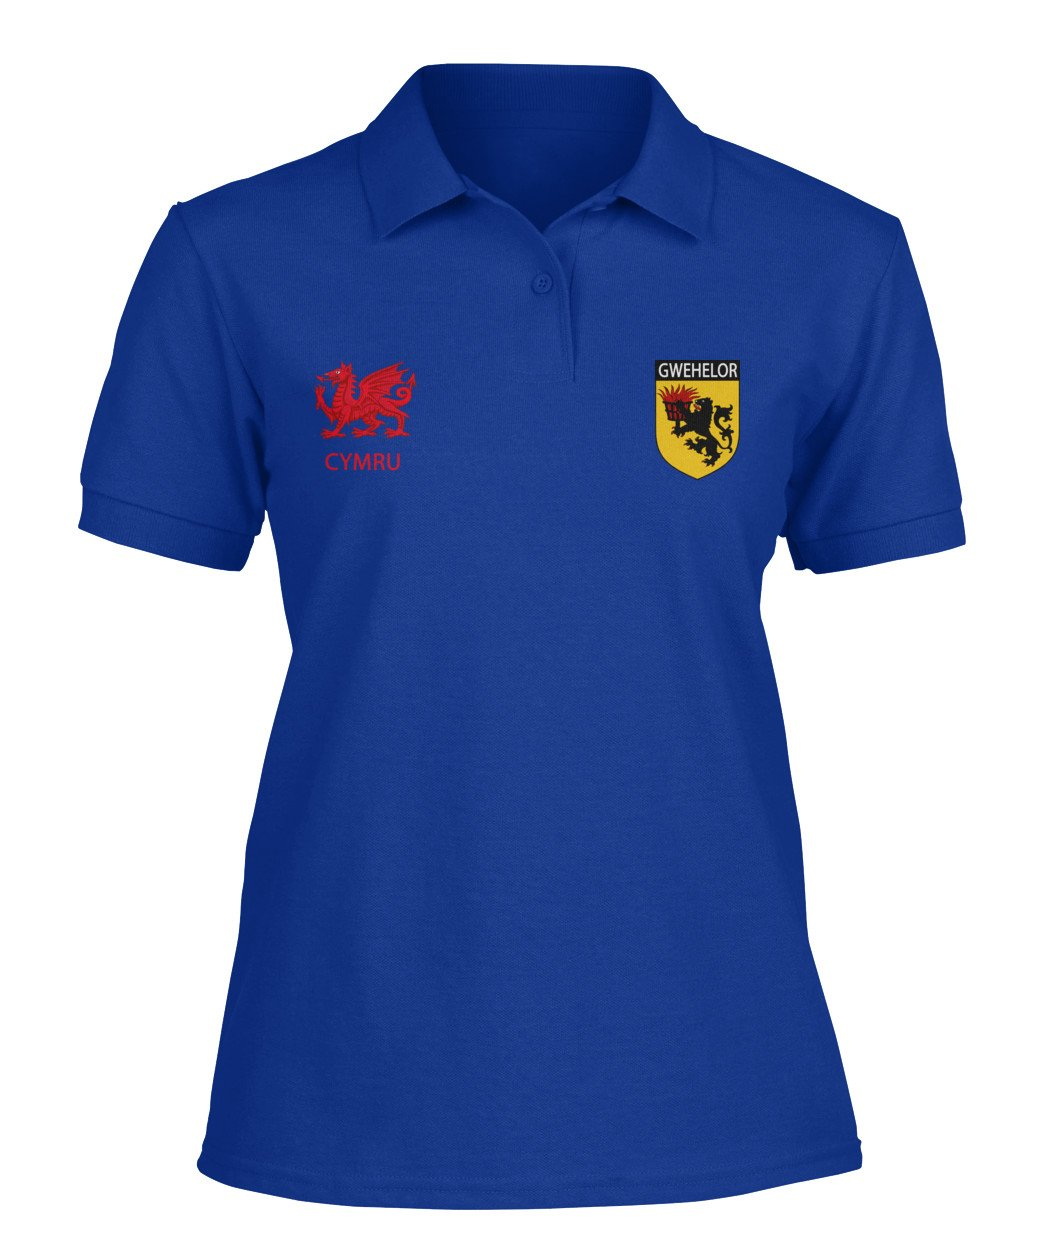 Wales Polo Shirt Gwehelor Lord Of Llantrisaint Monmouthshire